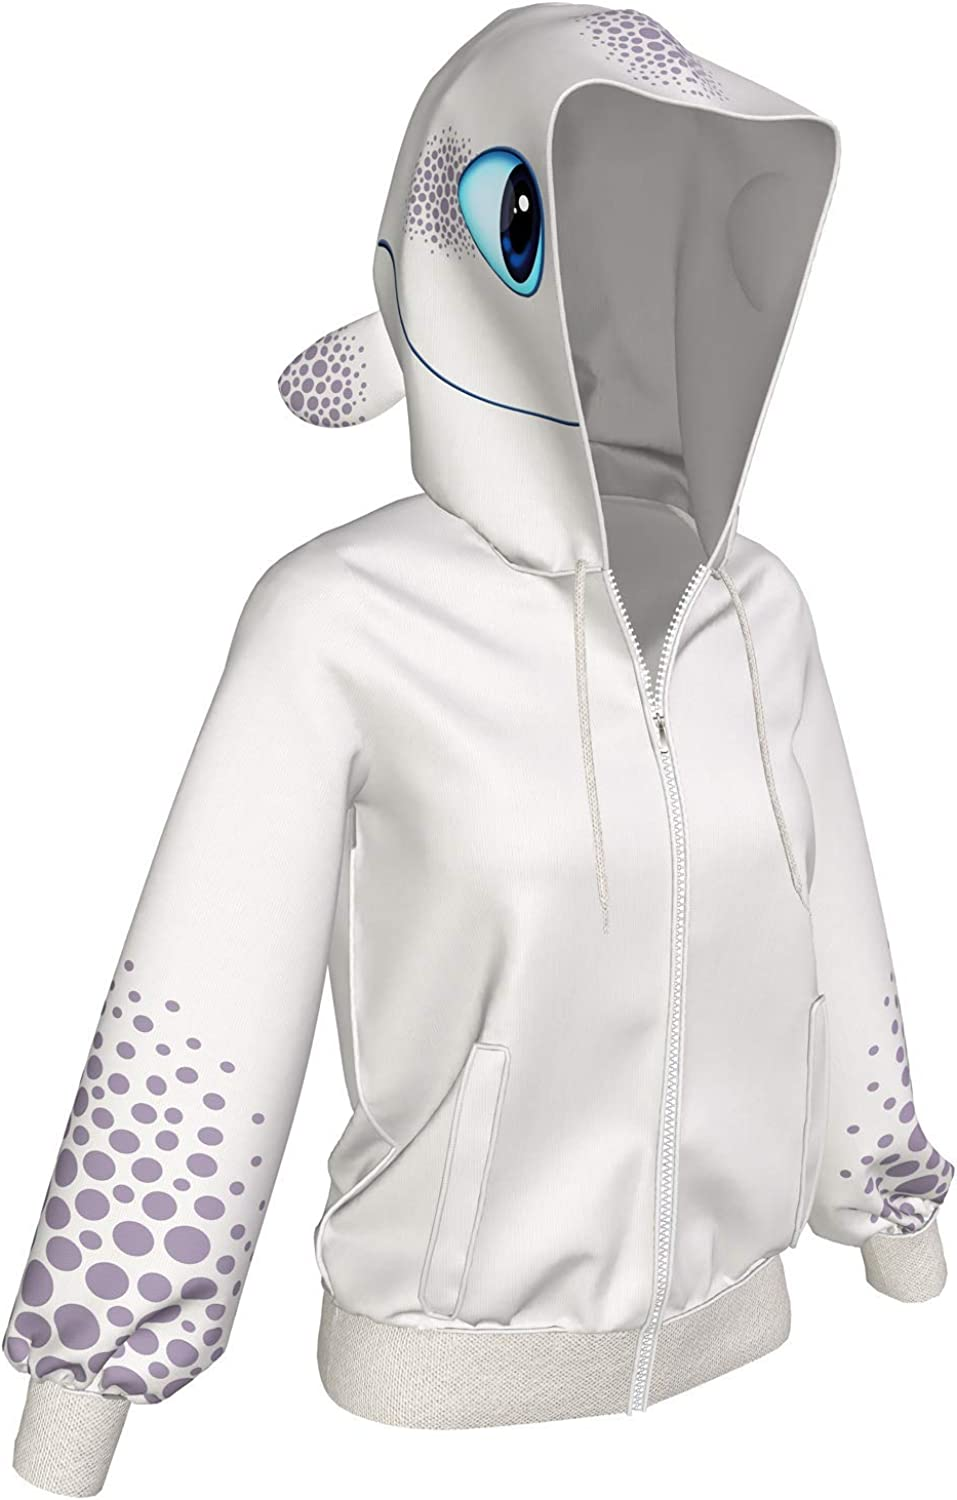 How to Train Your Dragon Womens Trend Leisure Time Hoodie